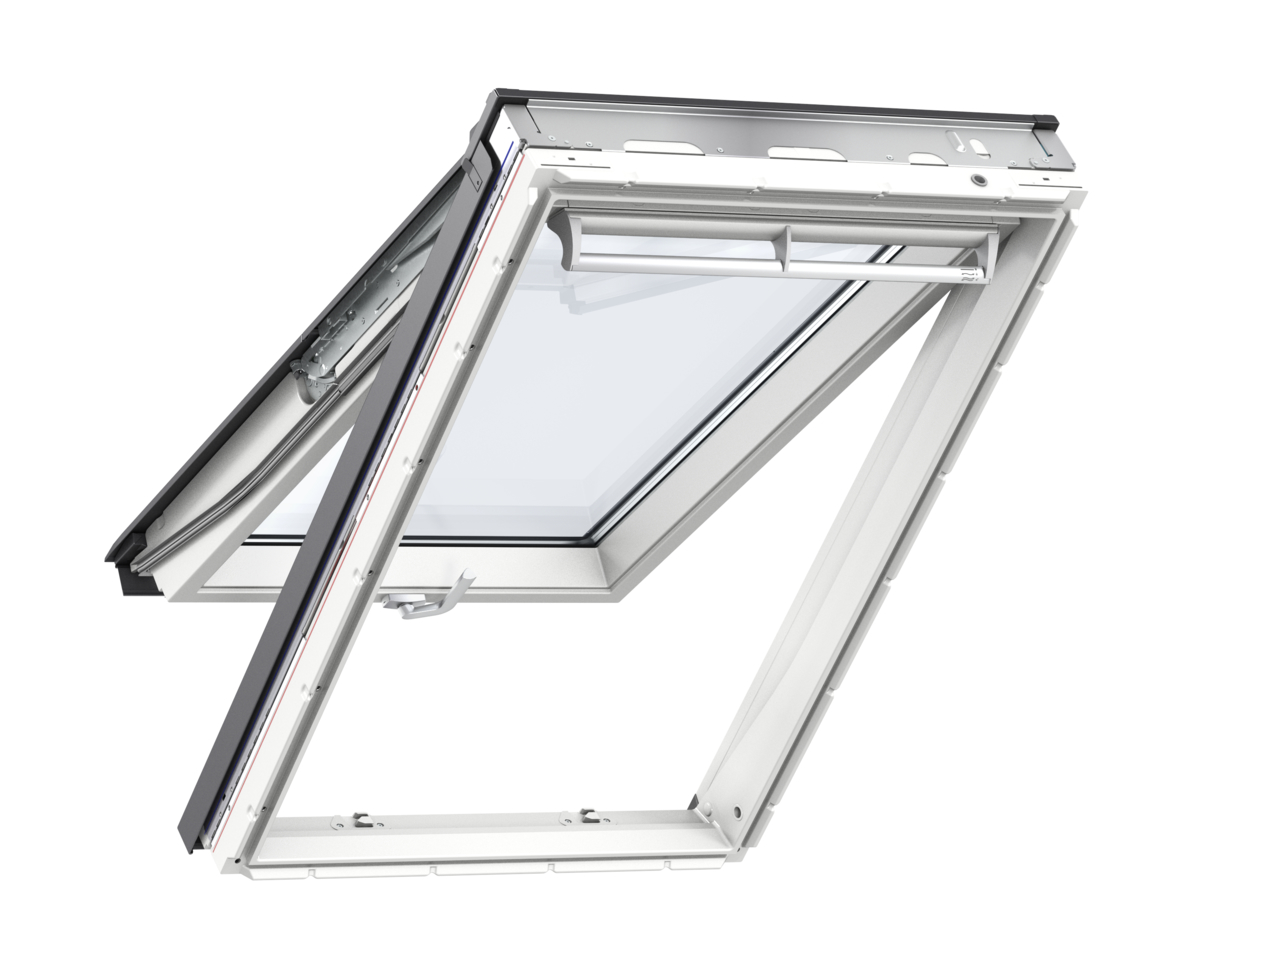 Velux GPU FK06 660 x 1180mm Top Hung 34Pane Roof Window - White Polyurethane